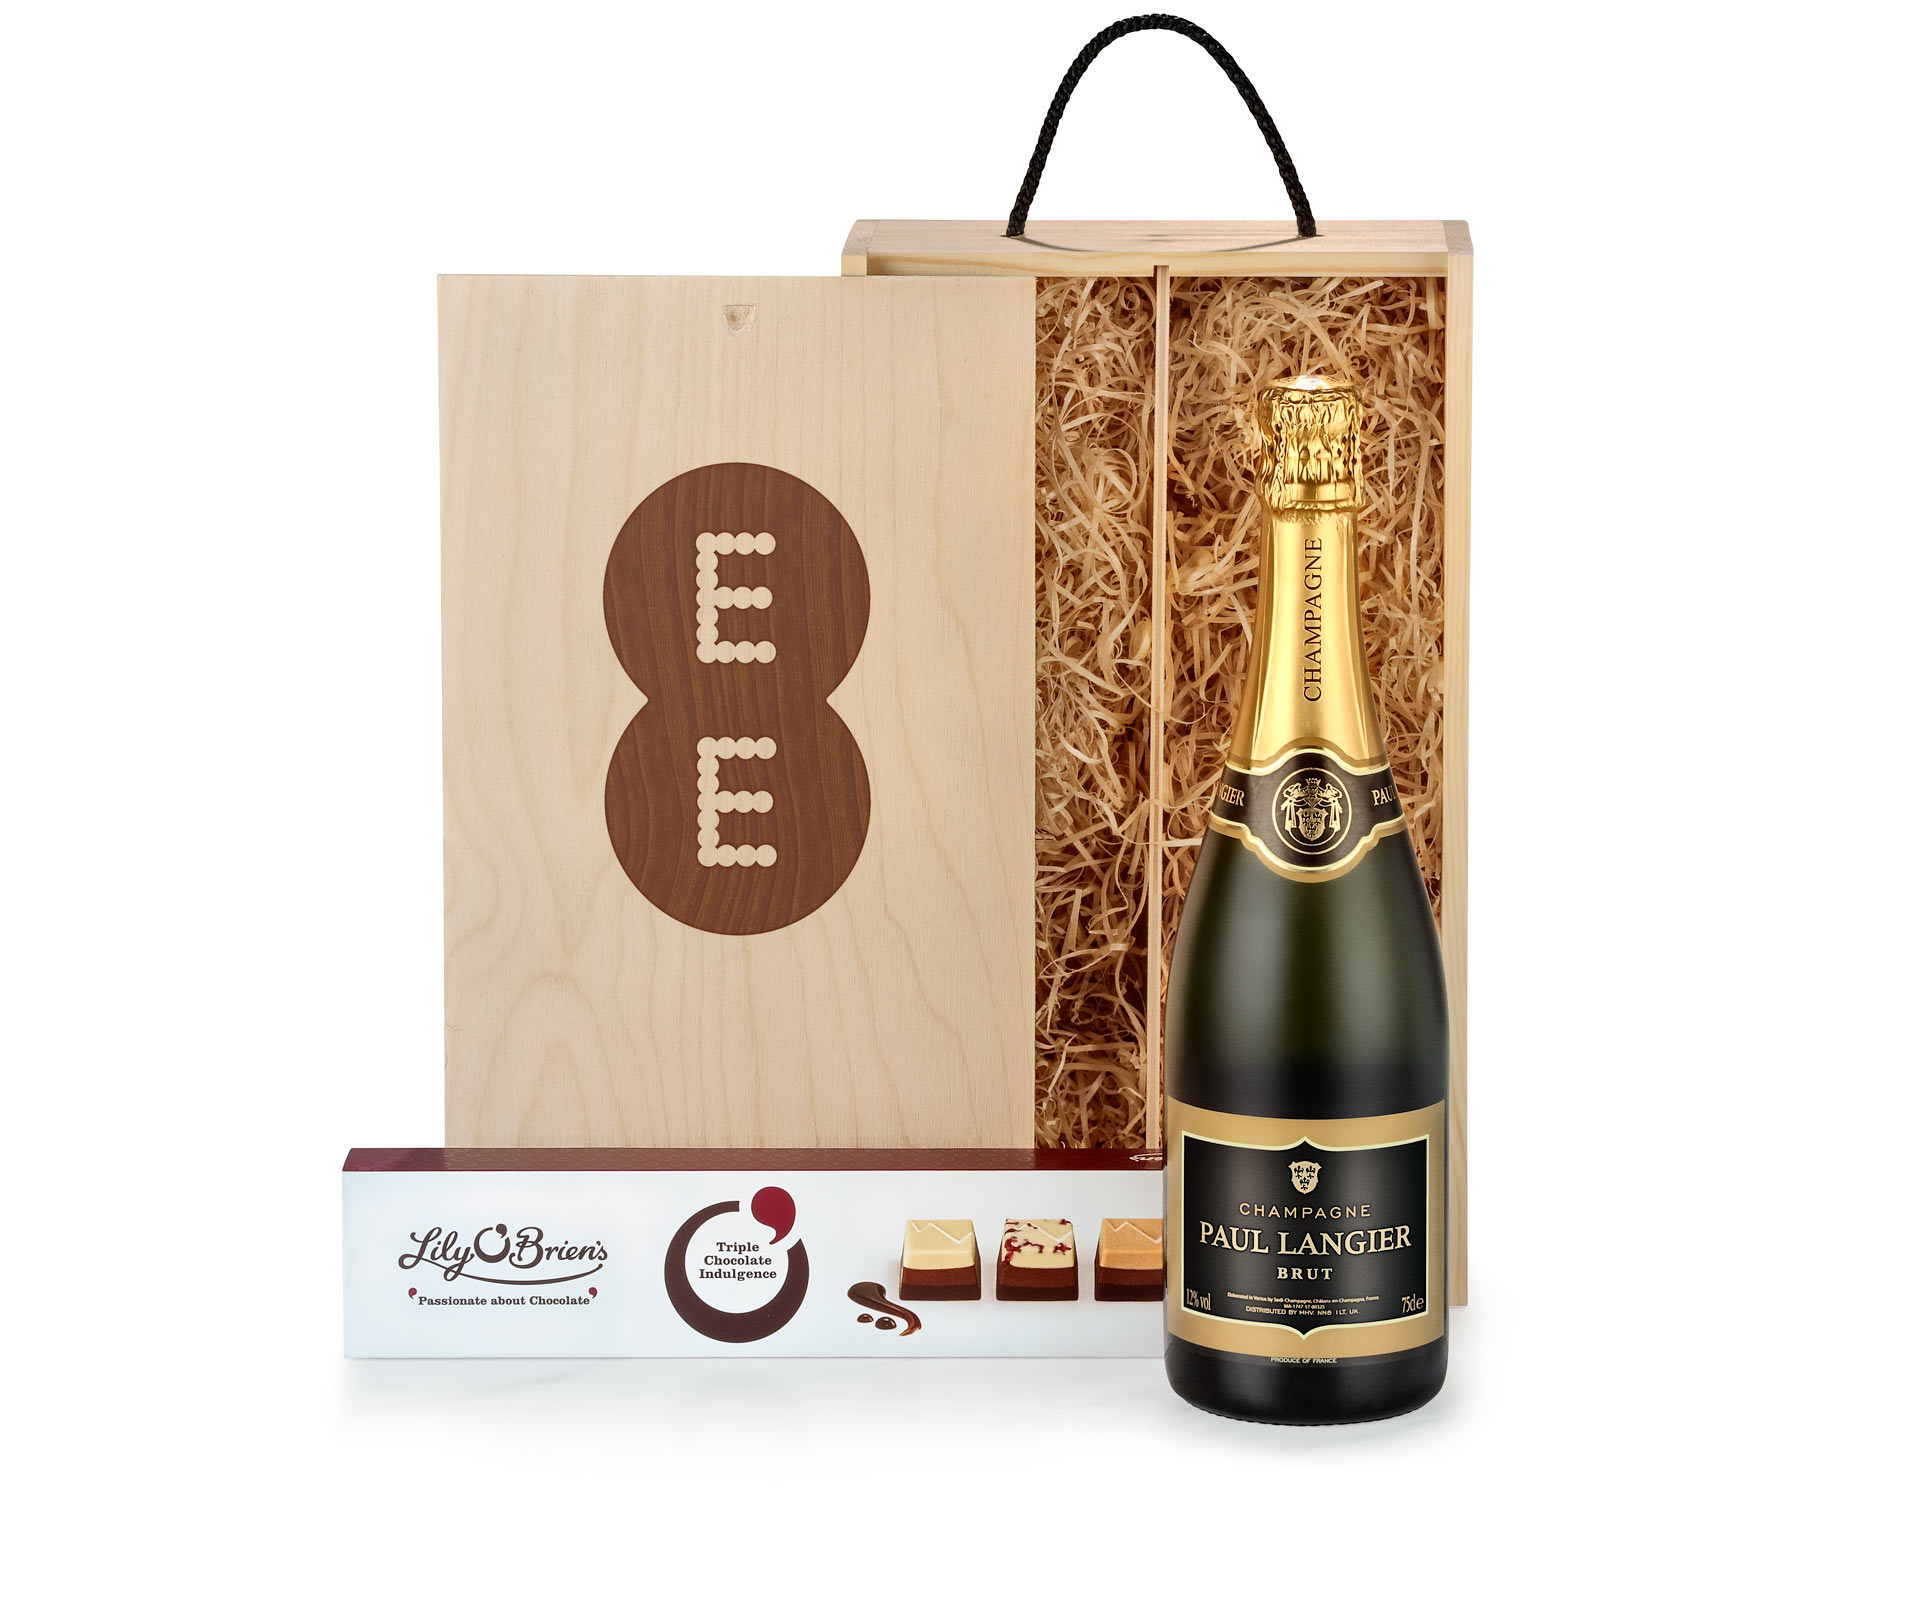 Champagne & Chocolates in Bespoke Branded Wooden Box